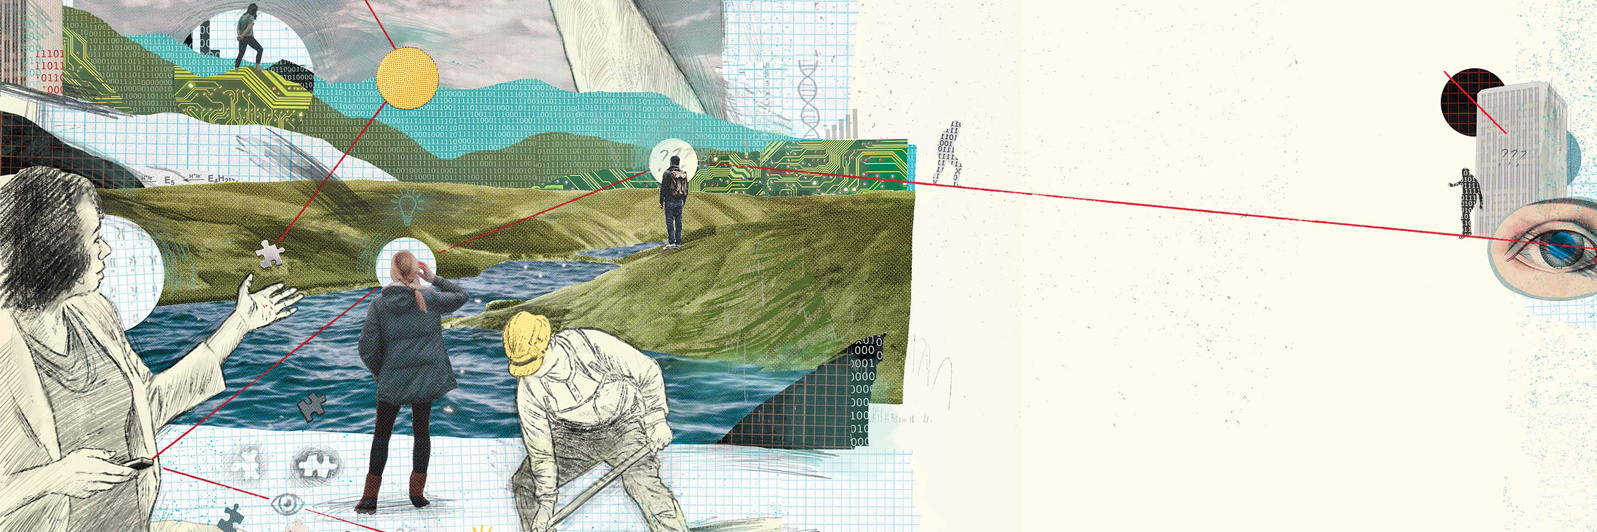 An illustrated graphic shows a man in a construction hat digging, a woman looking a stream, puzzle pieces, mountains and a woman teaching. It's meant to illustrate the idea of how big data is used in numerous ways.